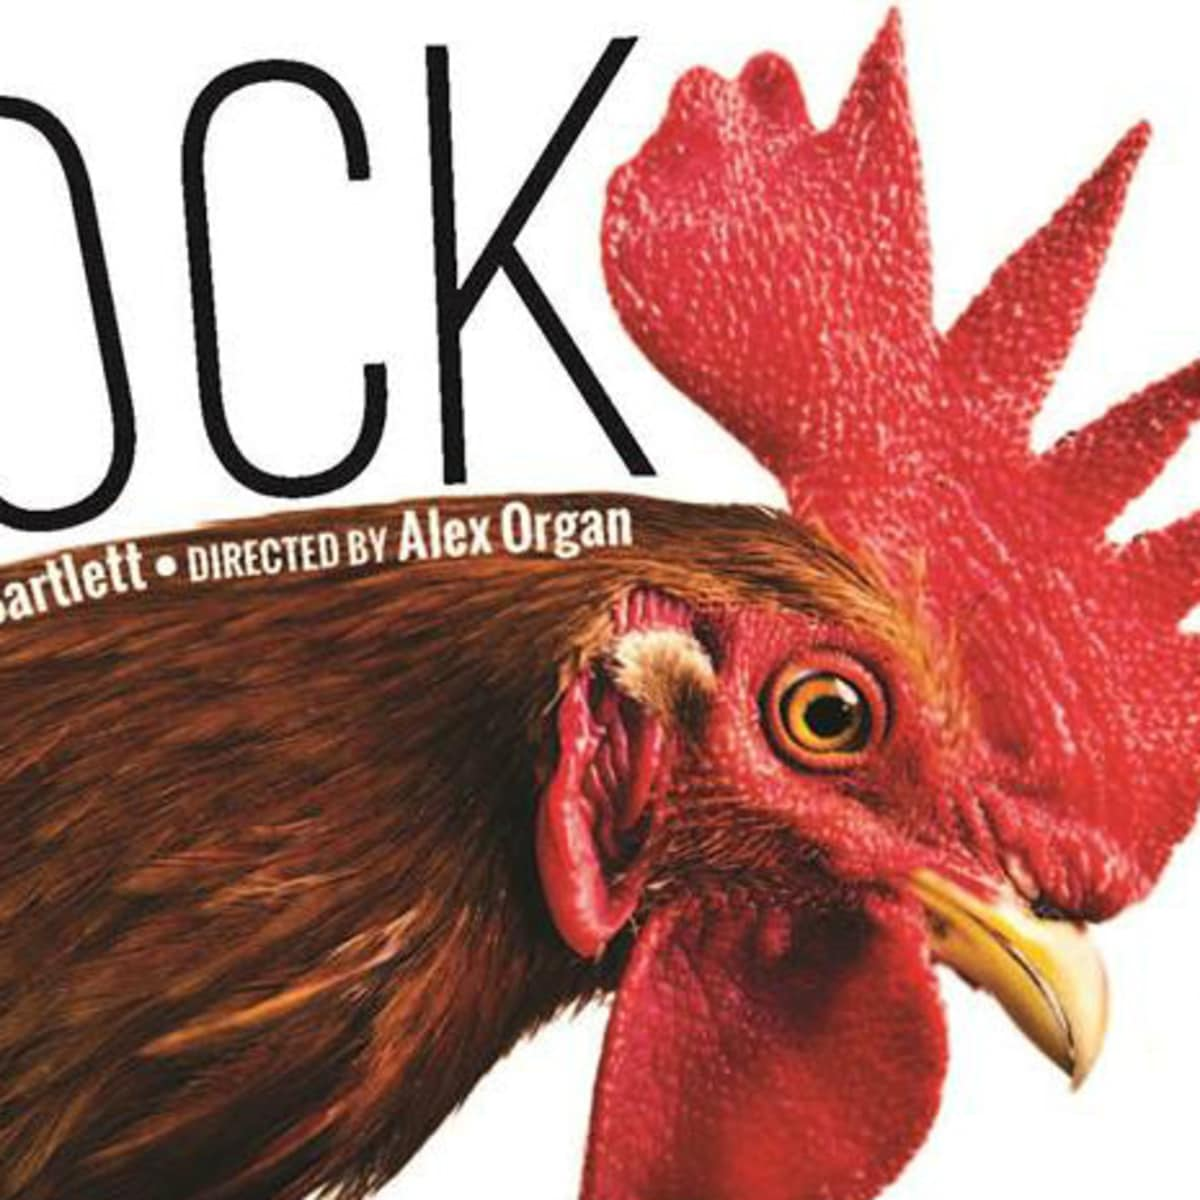 Second Thought Theatre presents Cock